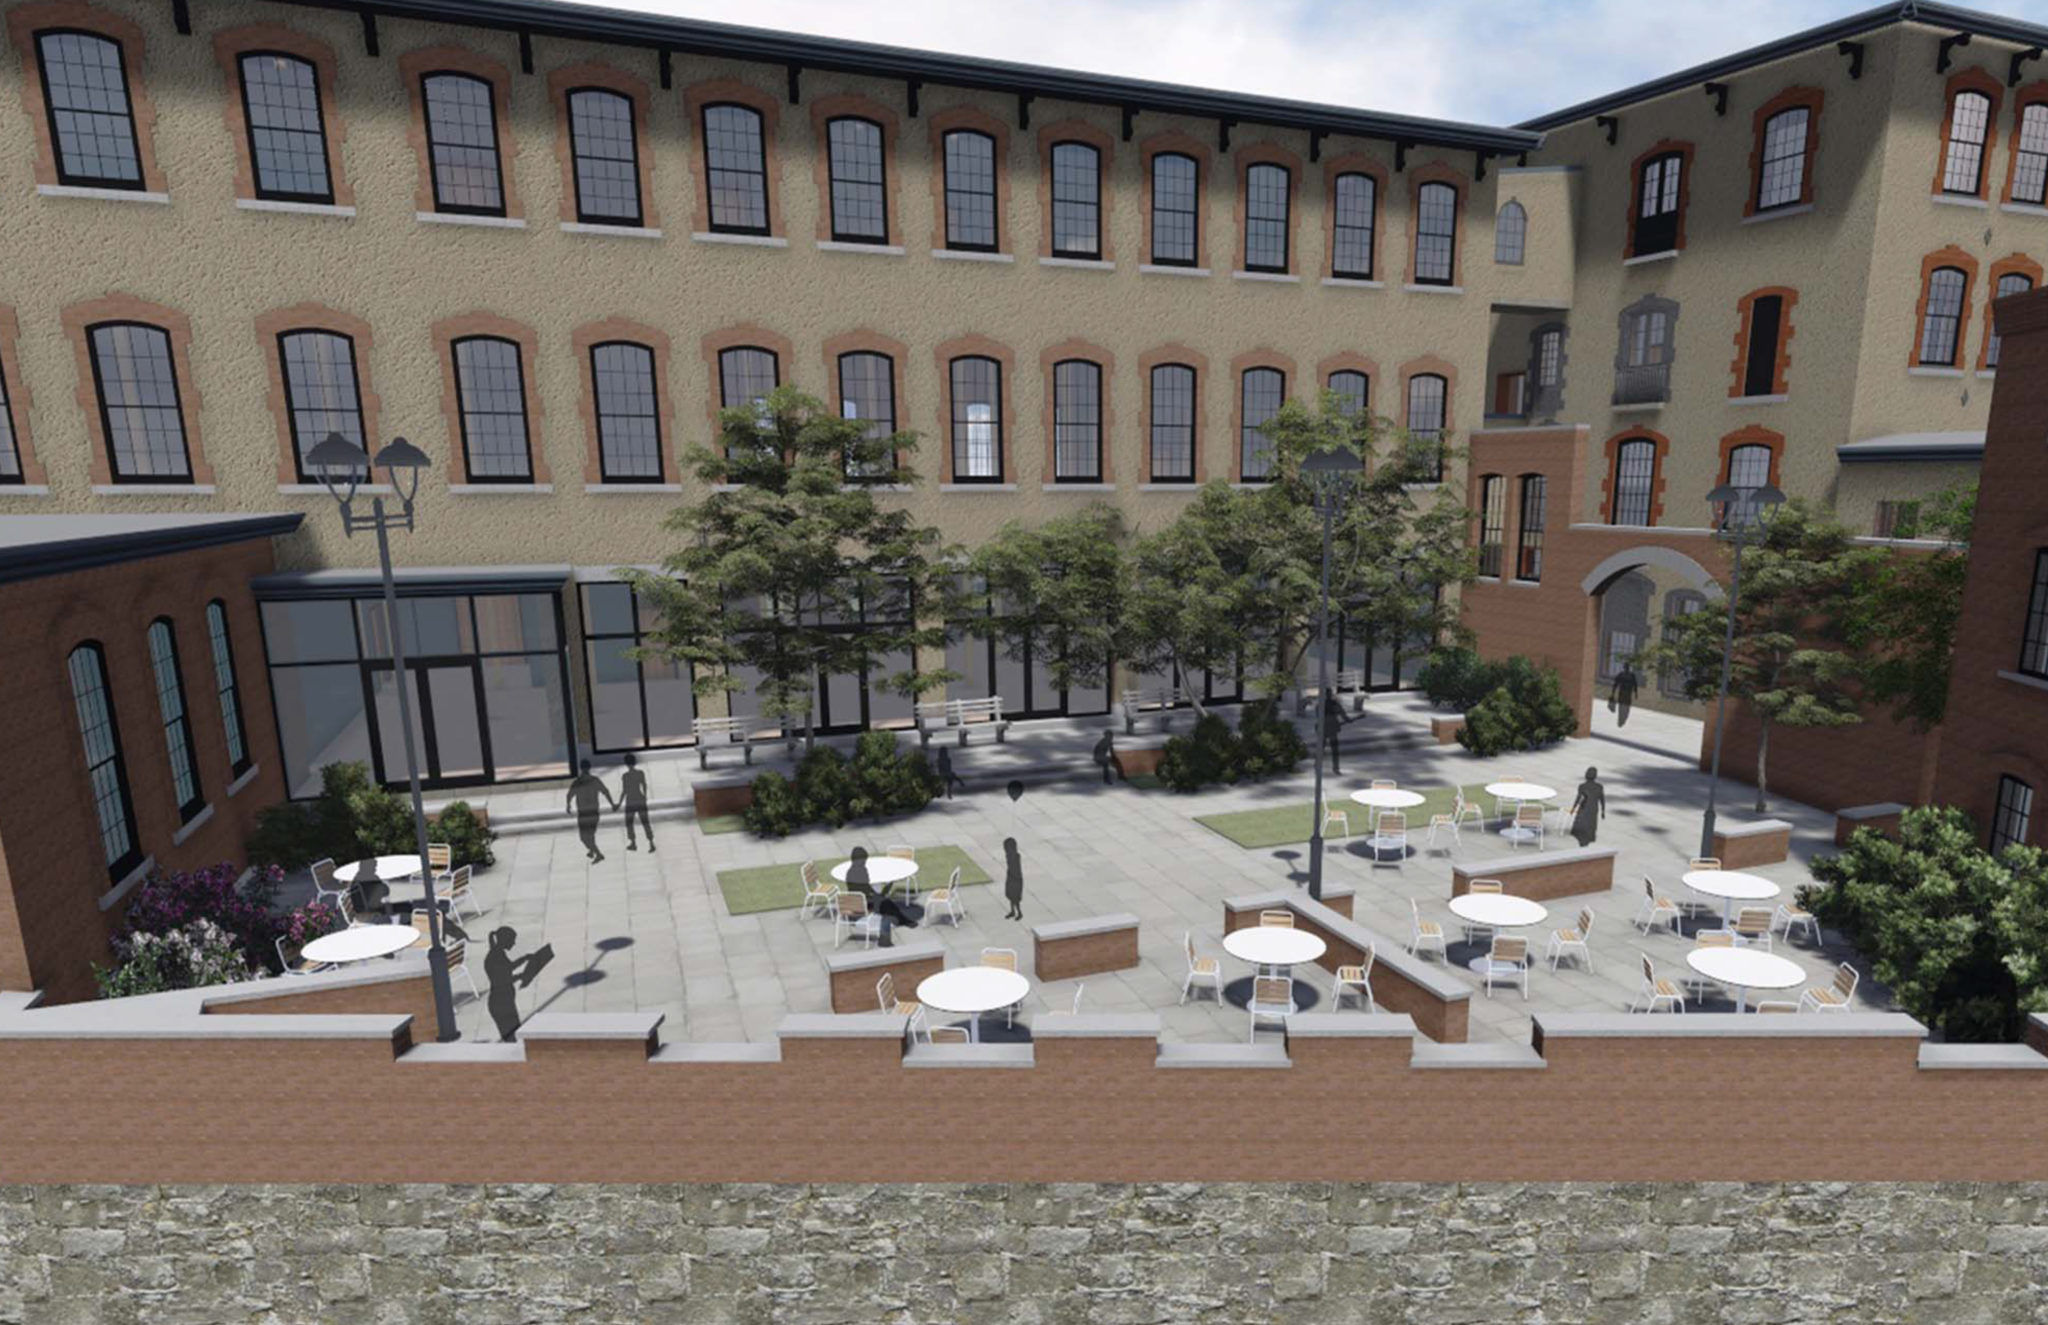 THE WASHINGTON TRUST CO. recently provided $23.6 million to finance the mixed-use redevelopment of Pontiac Mills in Warwick, shown by the rendering above. / COURTESY WASHINGTON TRUST